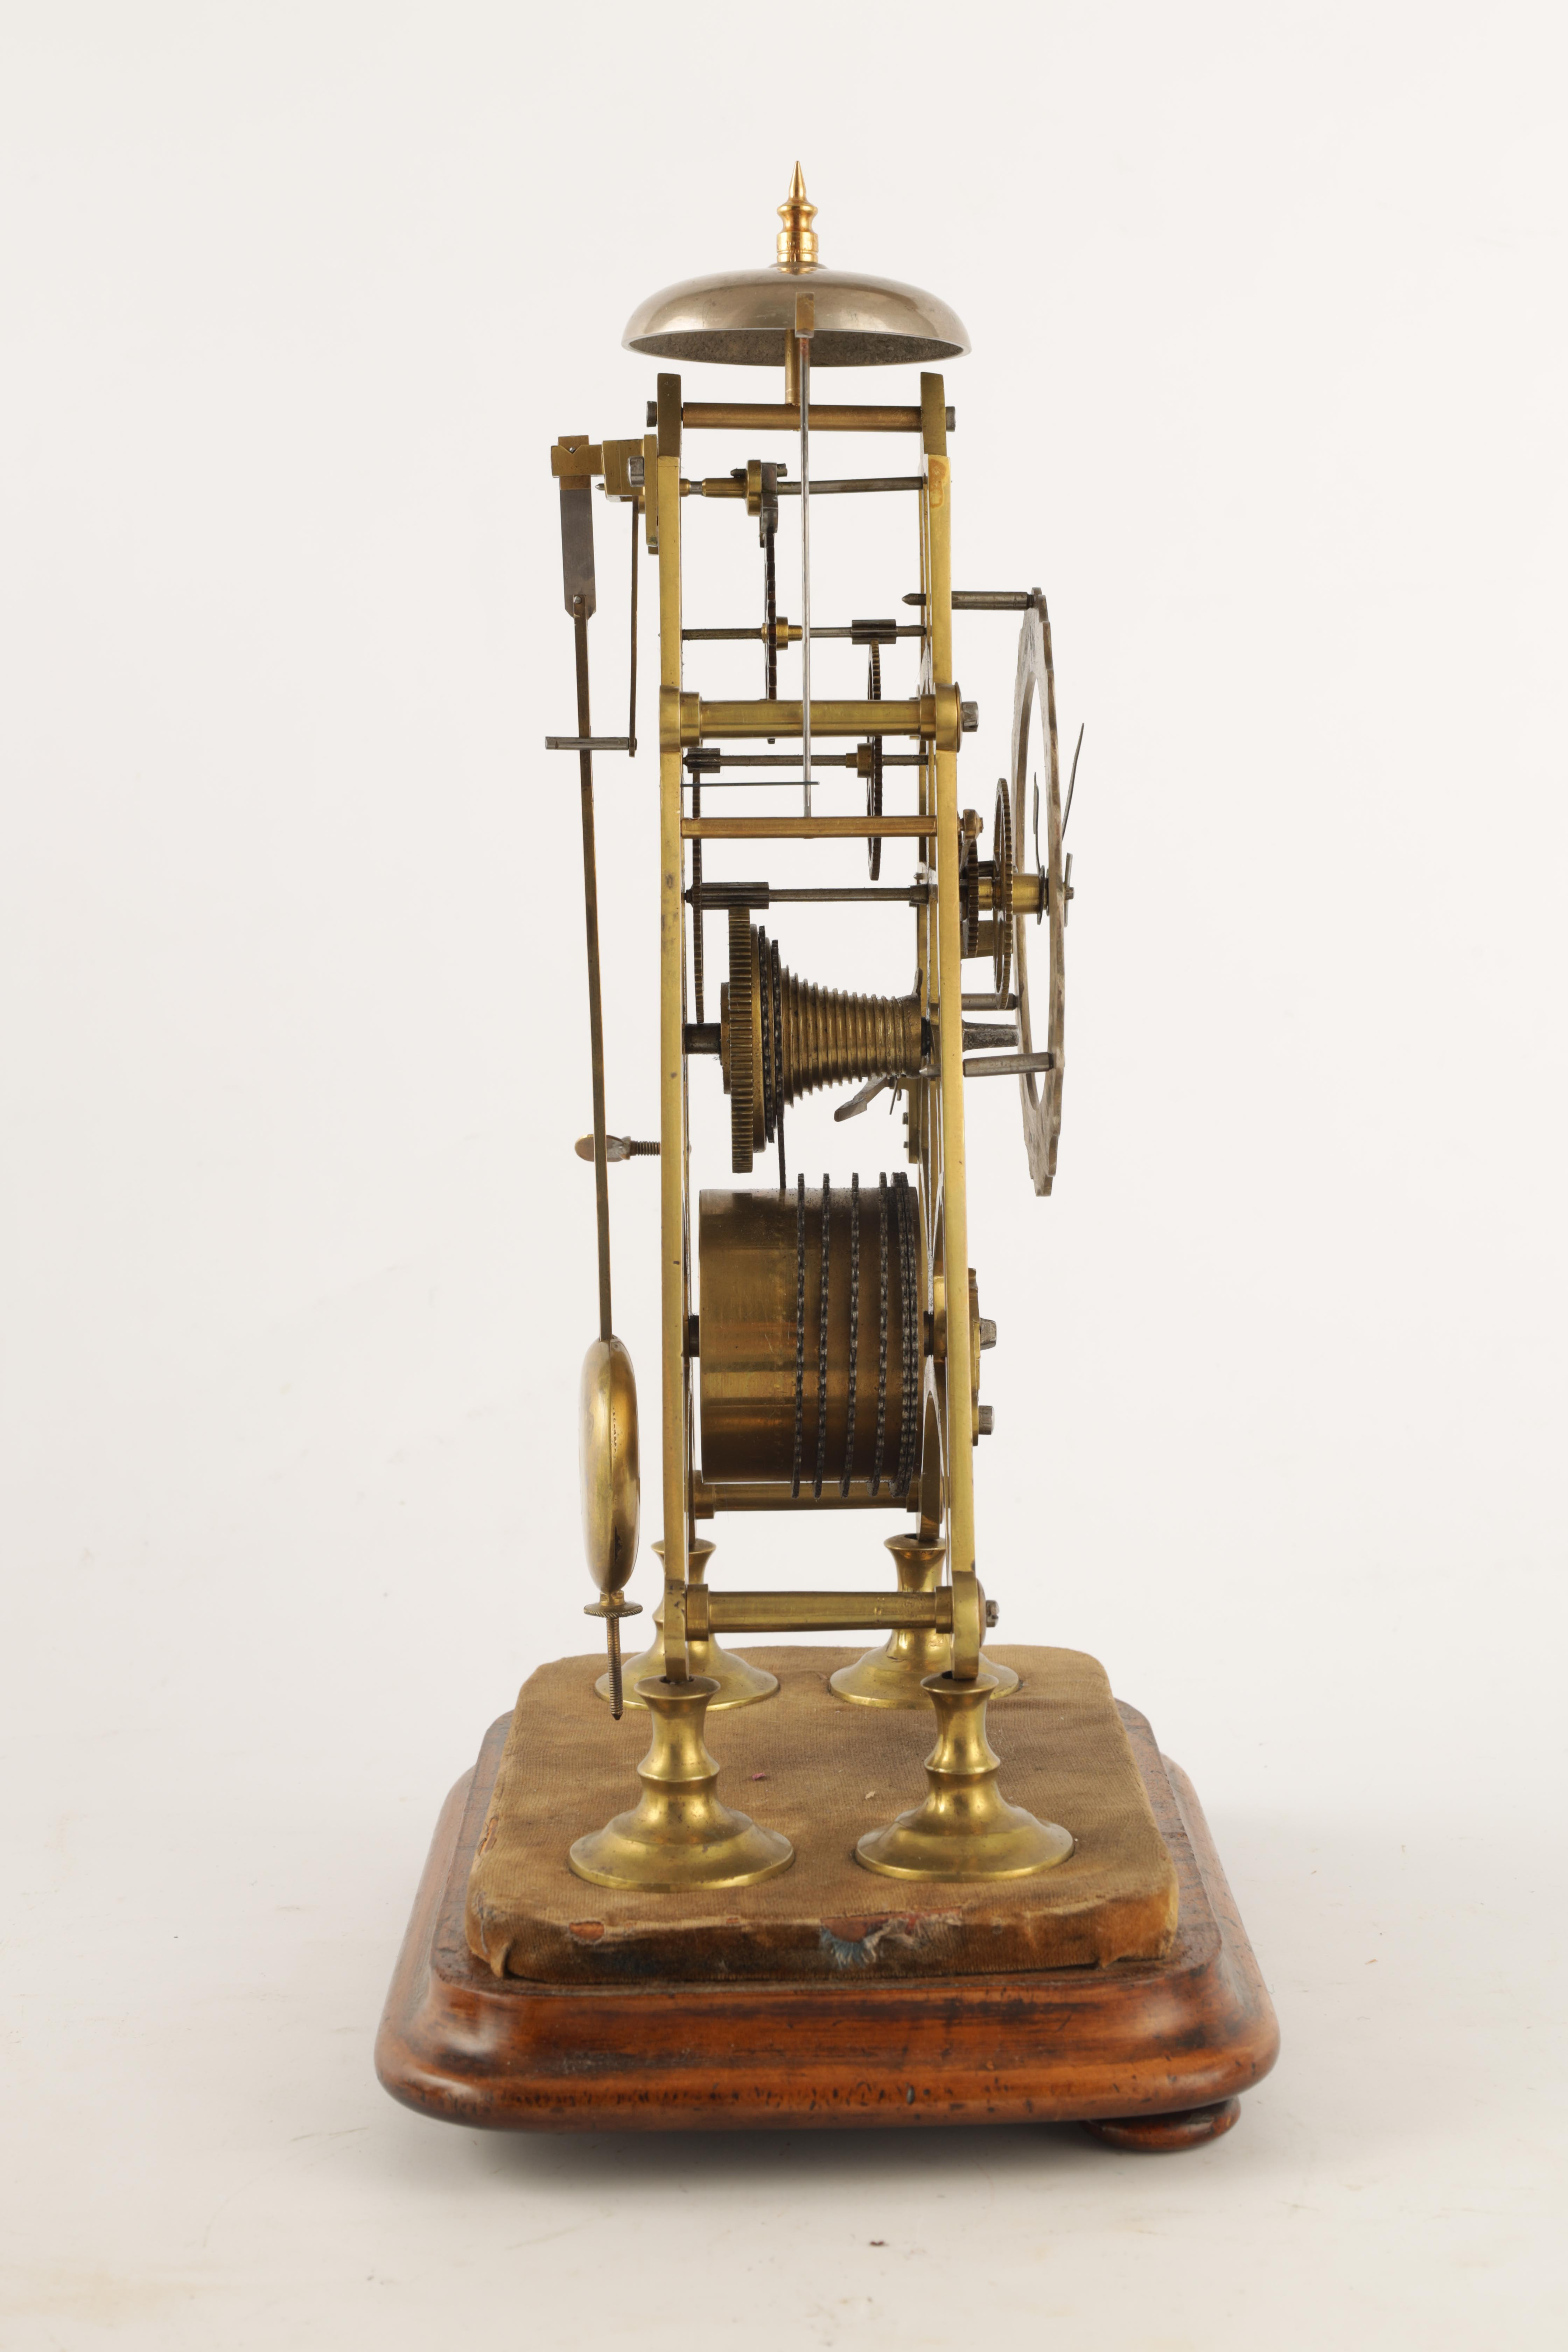 A 19TH CENTURY 8-DAY FUSEE TIMEPIECE SKELETON CLOCK with passing hour bell strike, tapering plates - Image 4 of 6